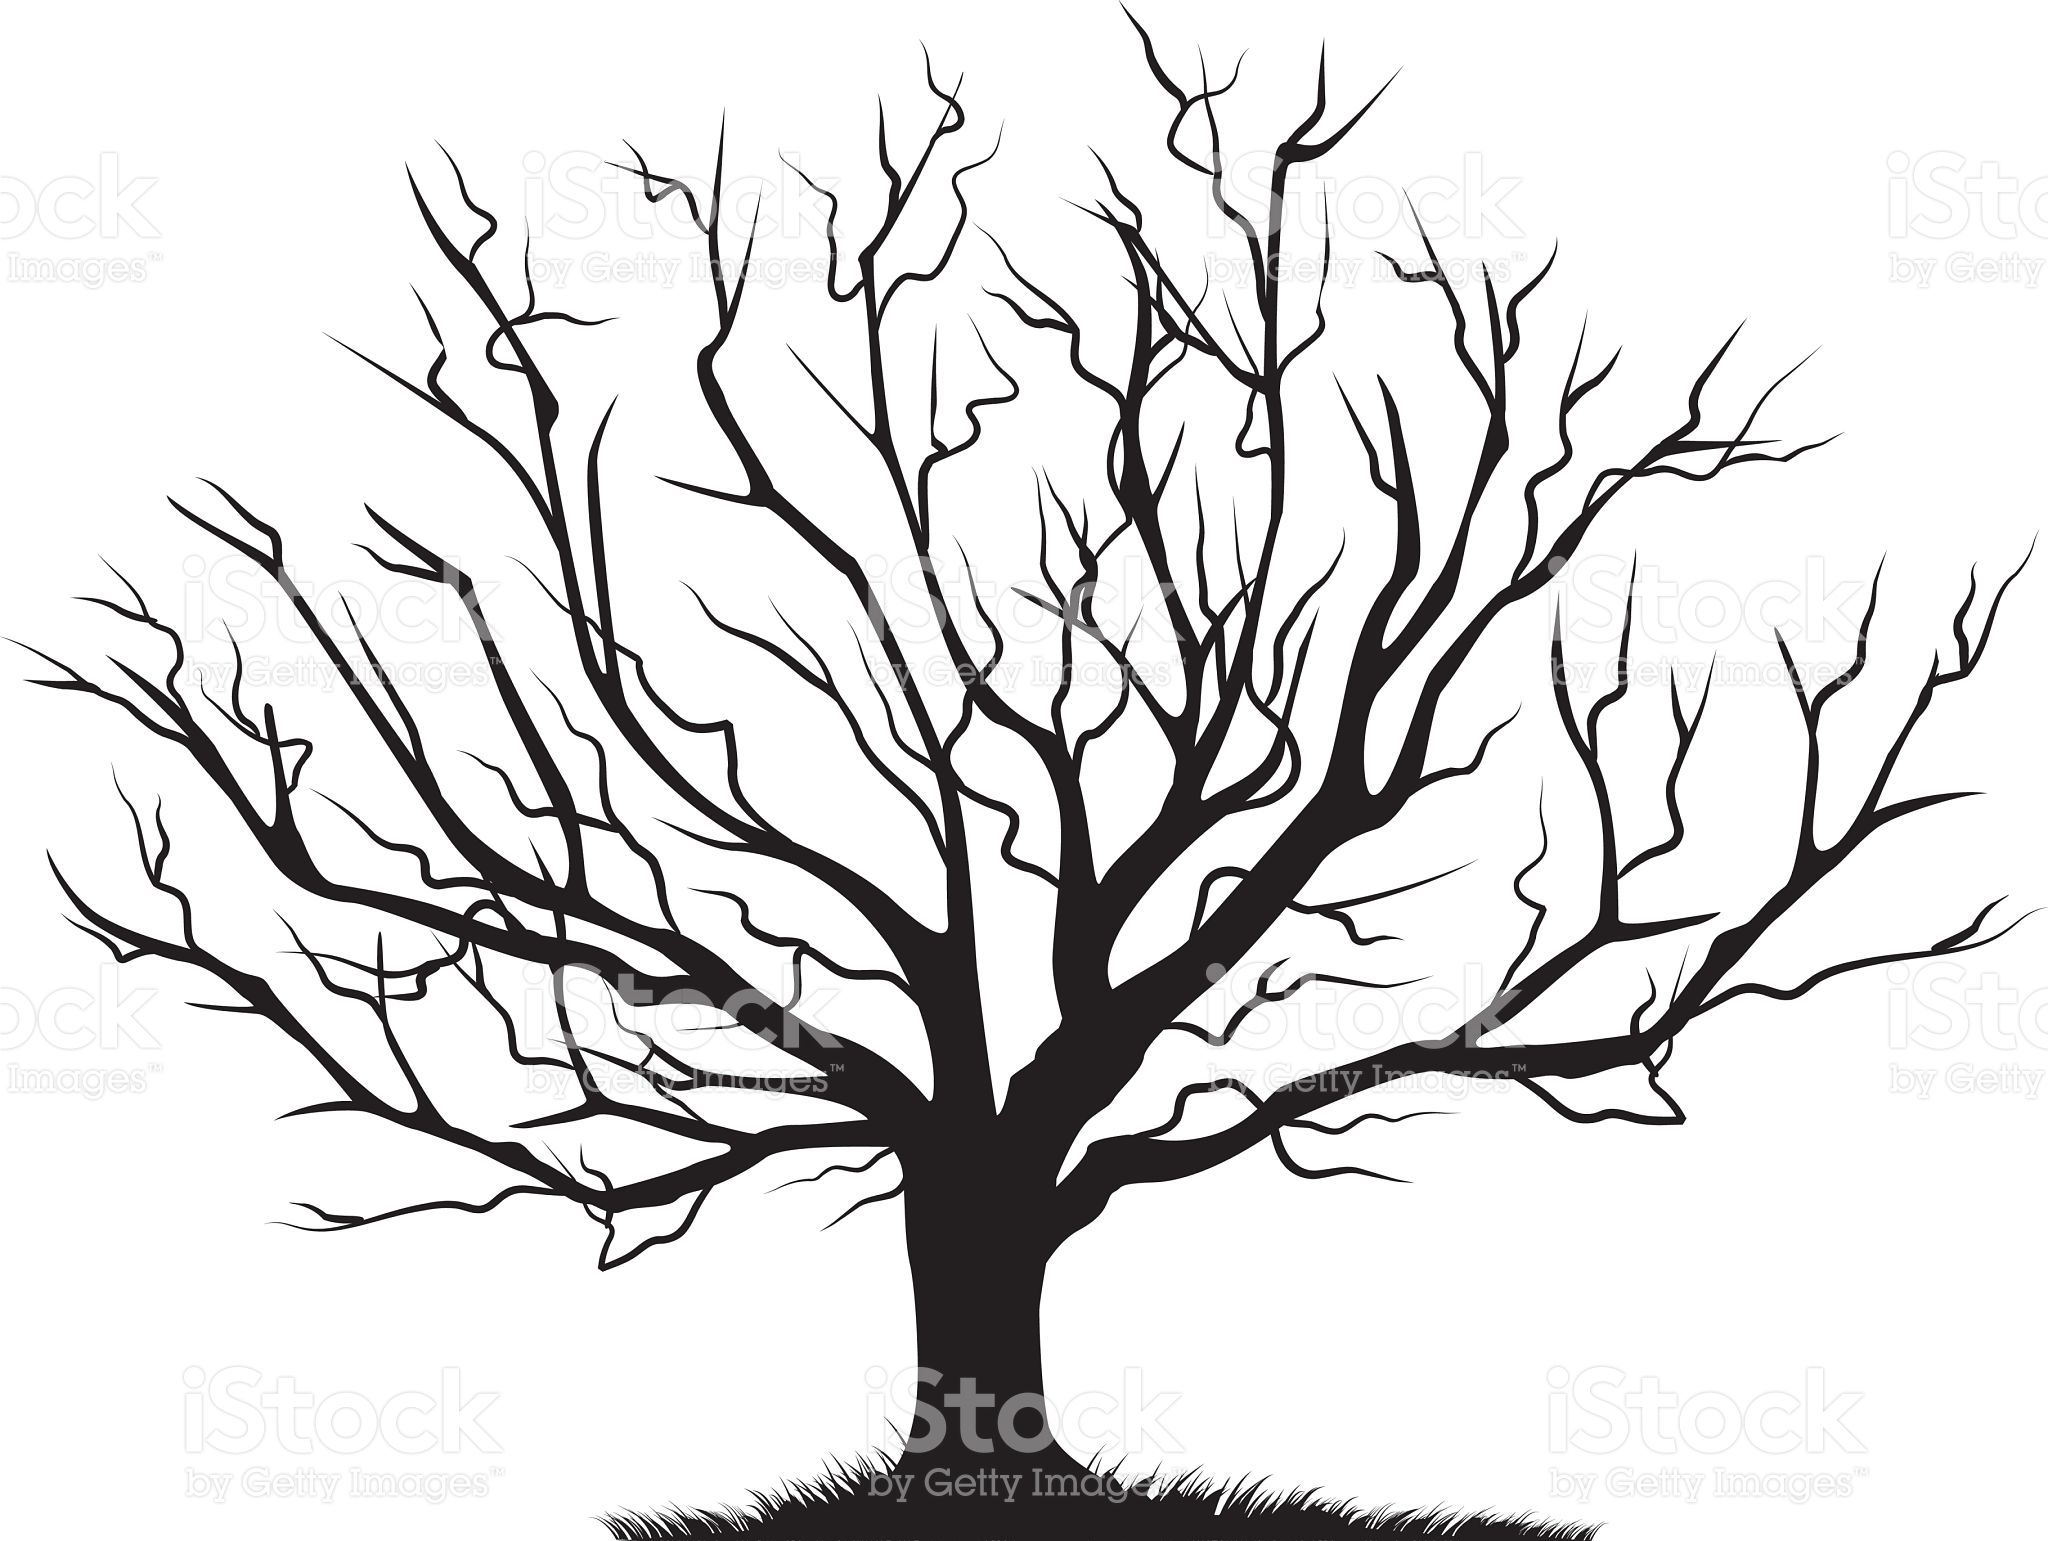 2048x1541 Deciduous Bare Tree With Empty Branches Black Silhouette Isolated